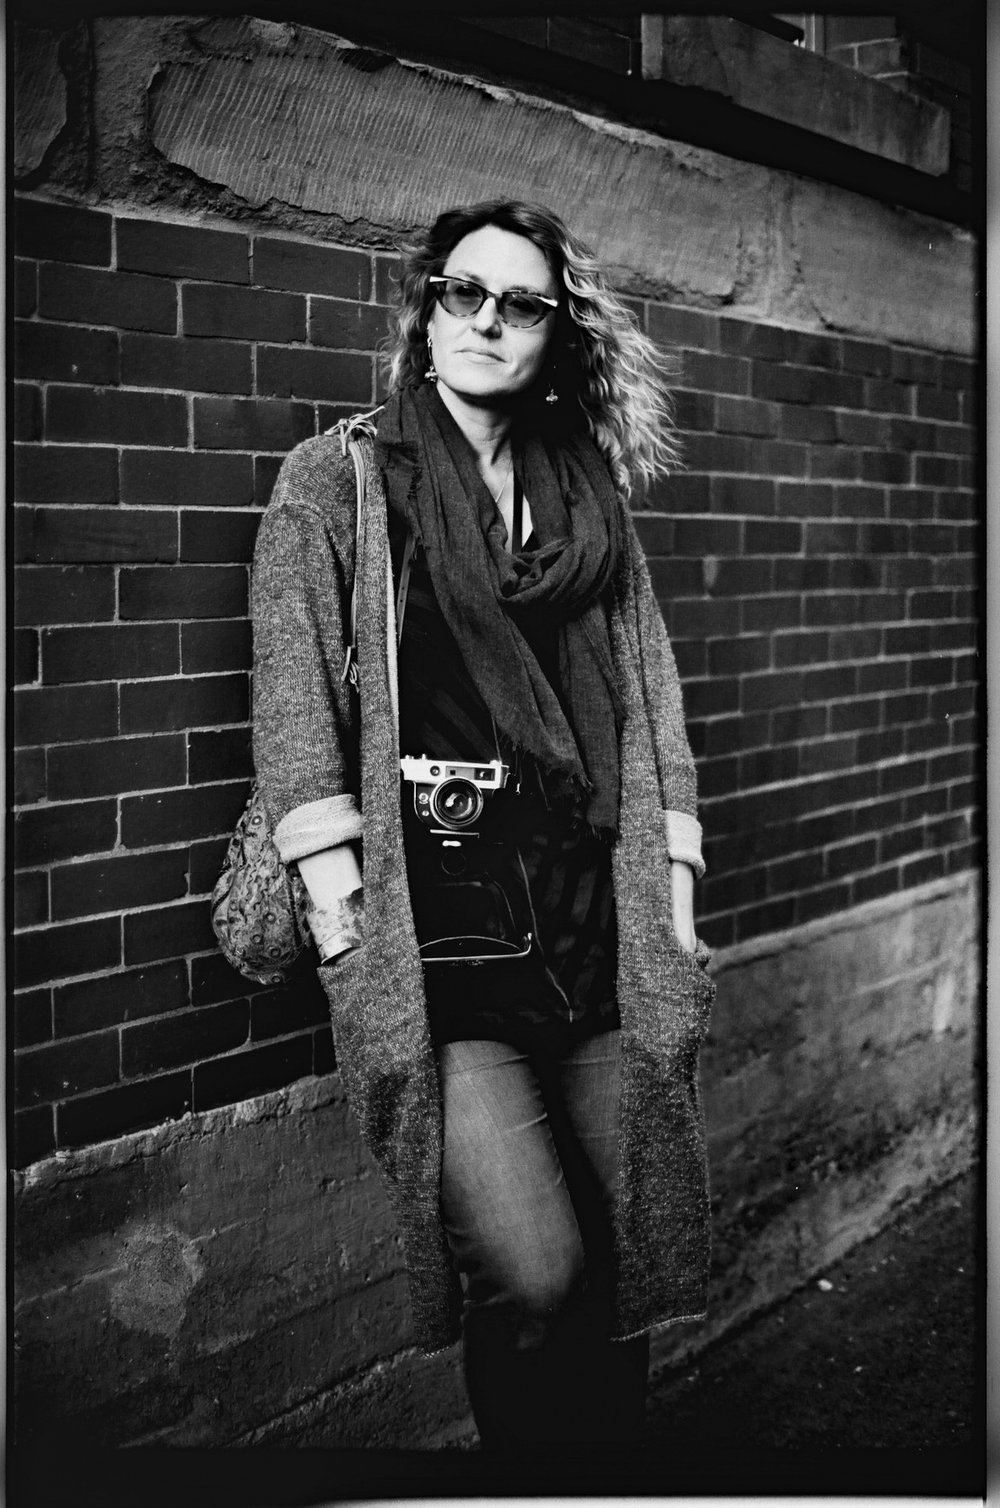 Joanne with her rangefinder camera . Film Washi D 500 Sputnik Panchromatic black and white film. ©2018 Mark Klotz